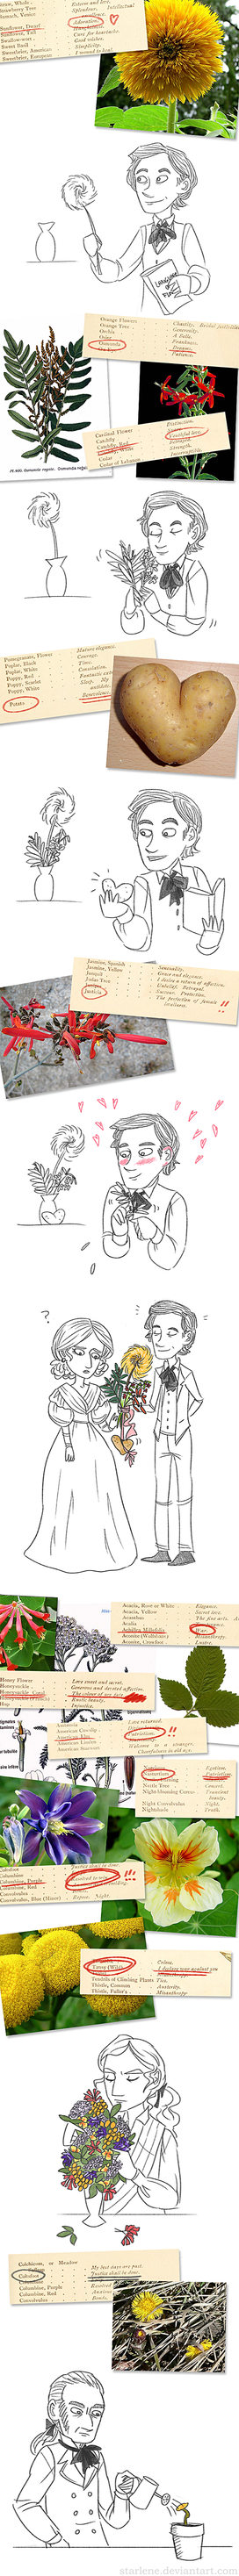 Les Miserables and the Language of Flowers by Starlene